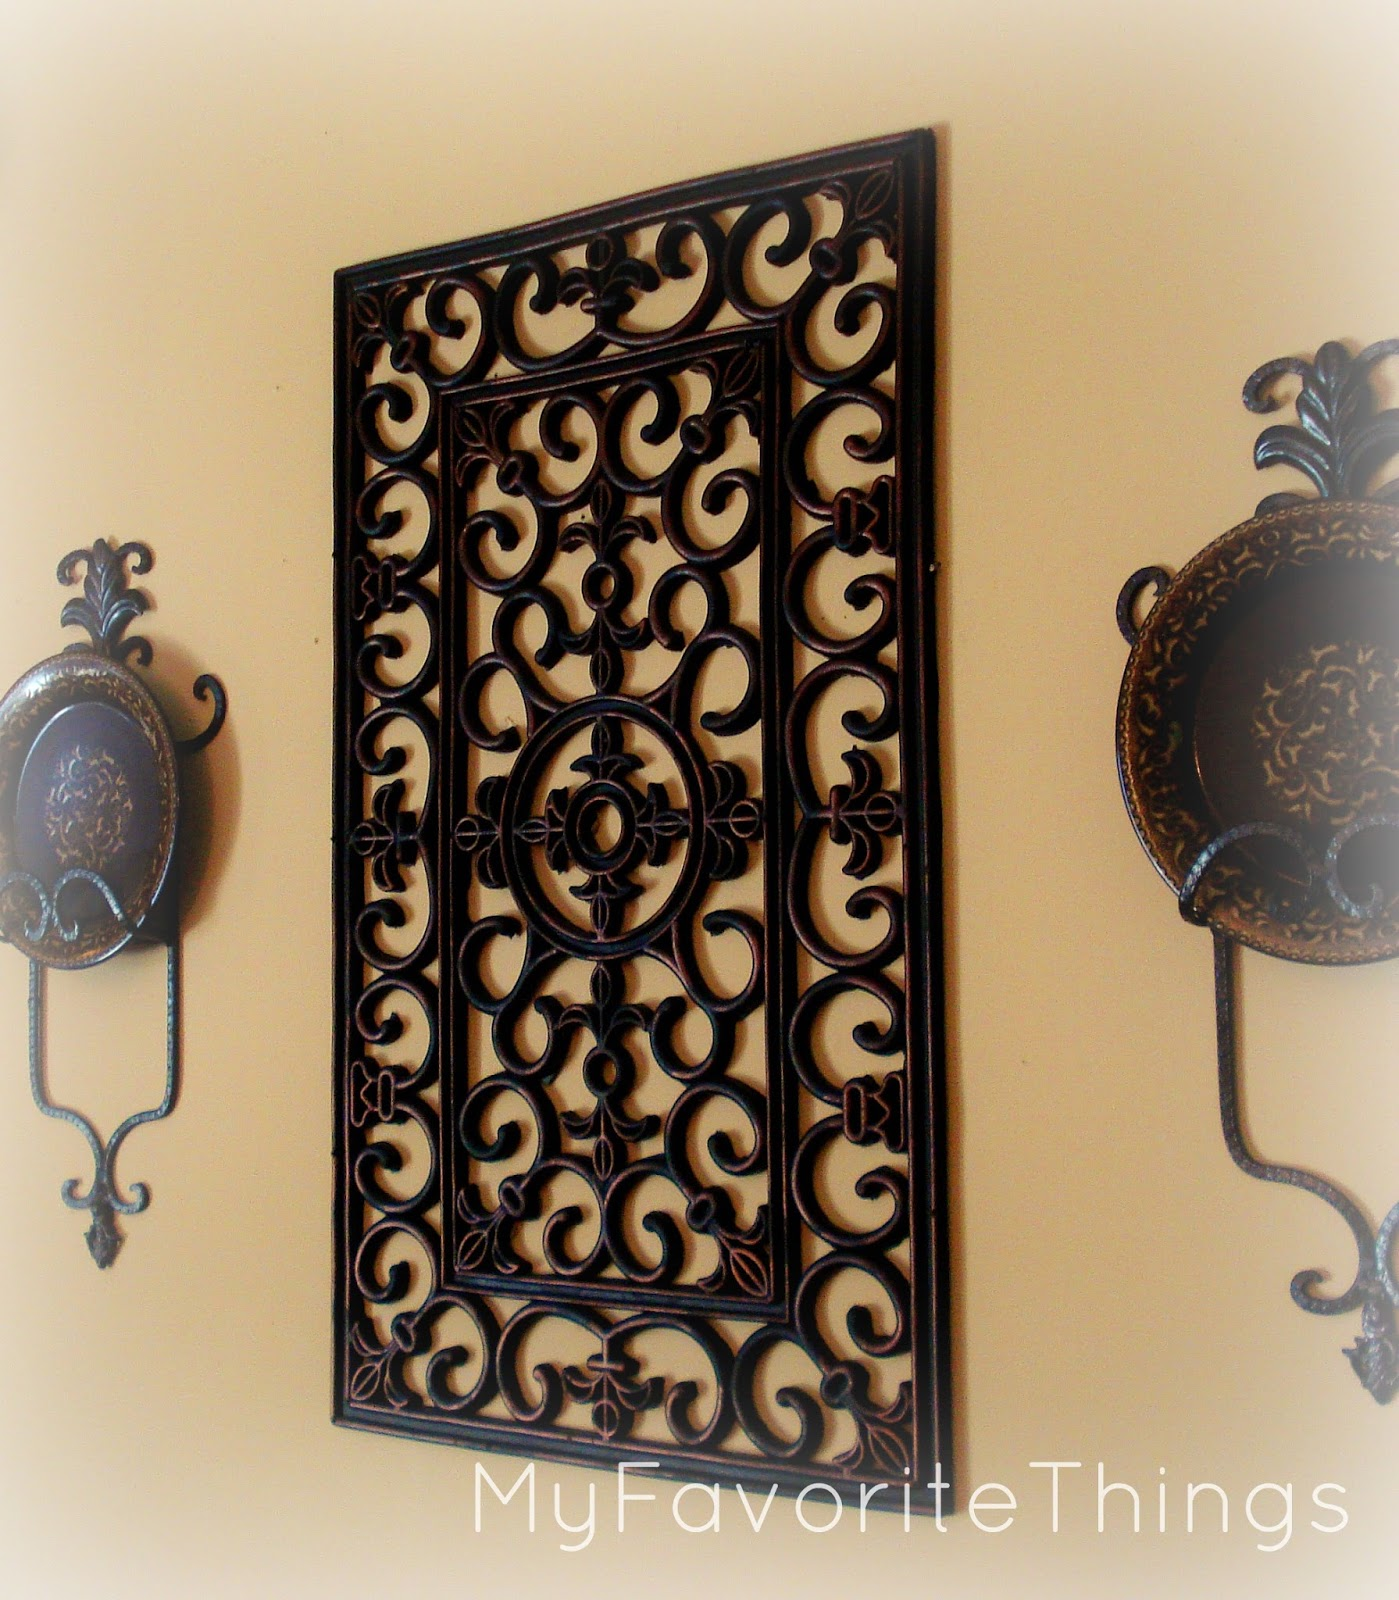 "Black Wrought Iron Wall Hangings Mesmerizing My Favorite Things ""wrought Iron"" Wall Art Decorating Design"